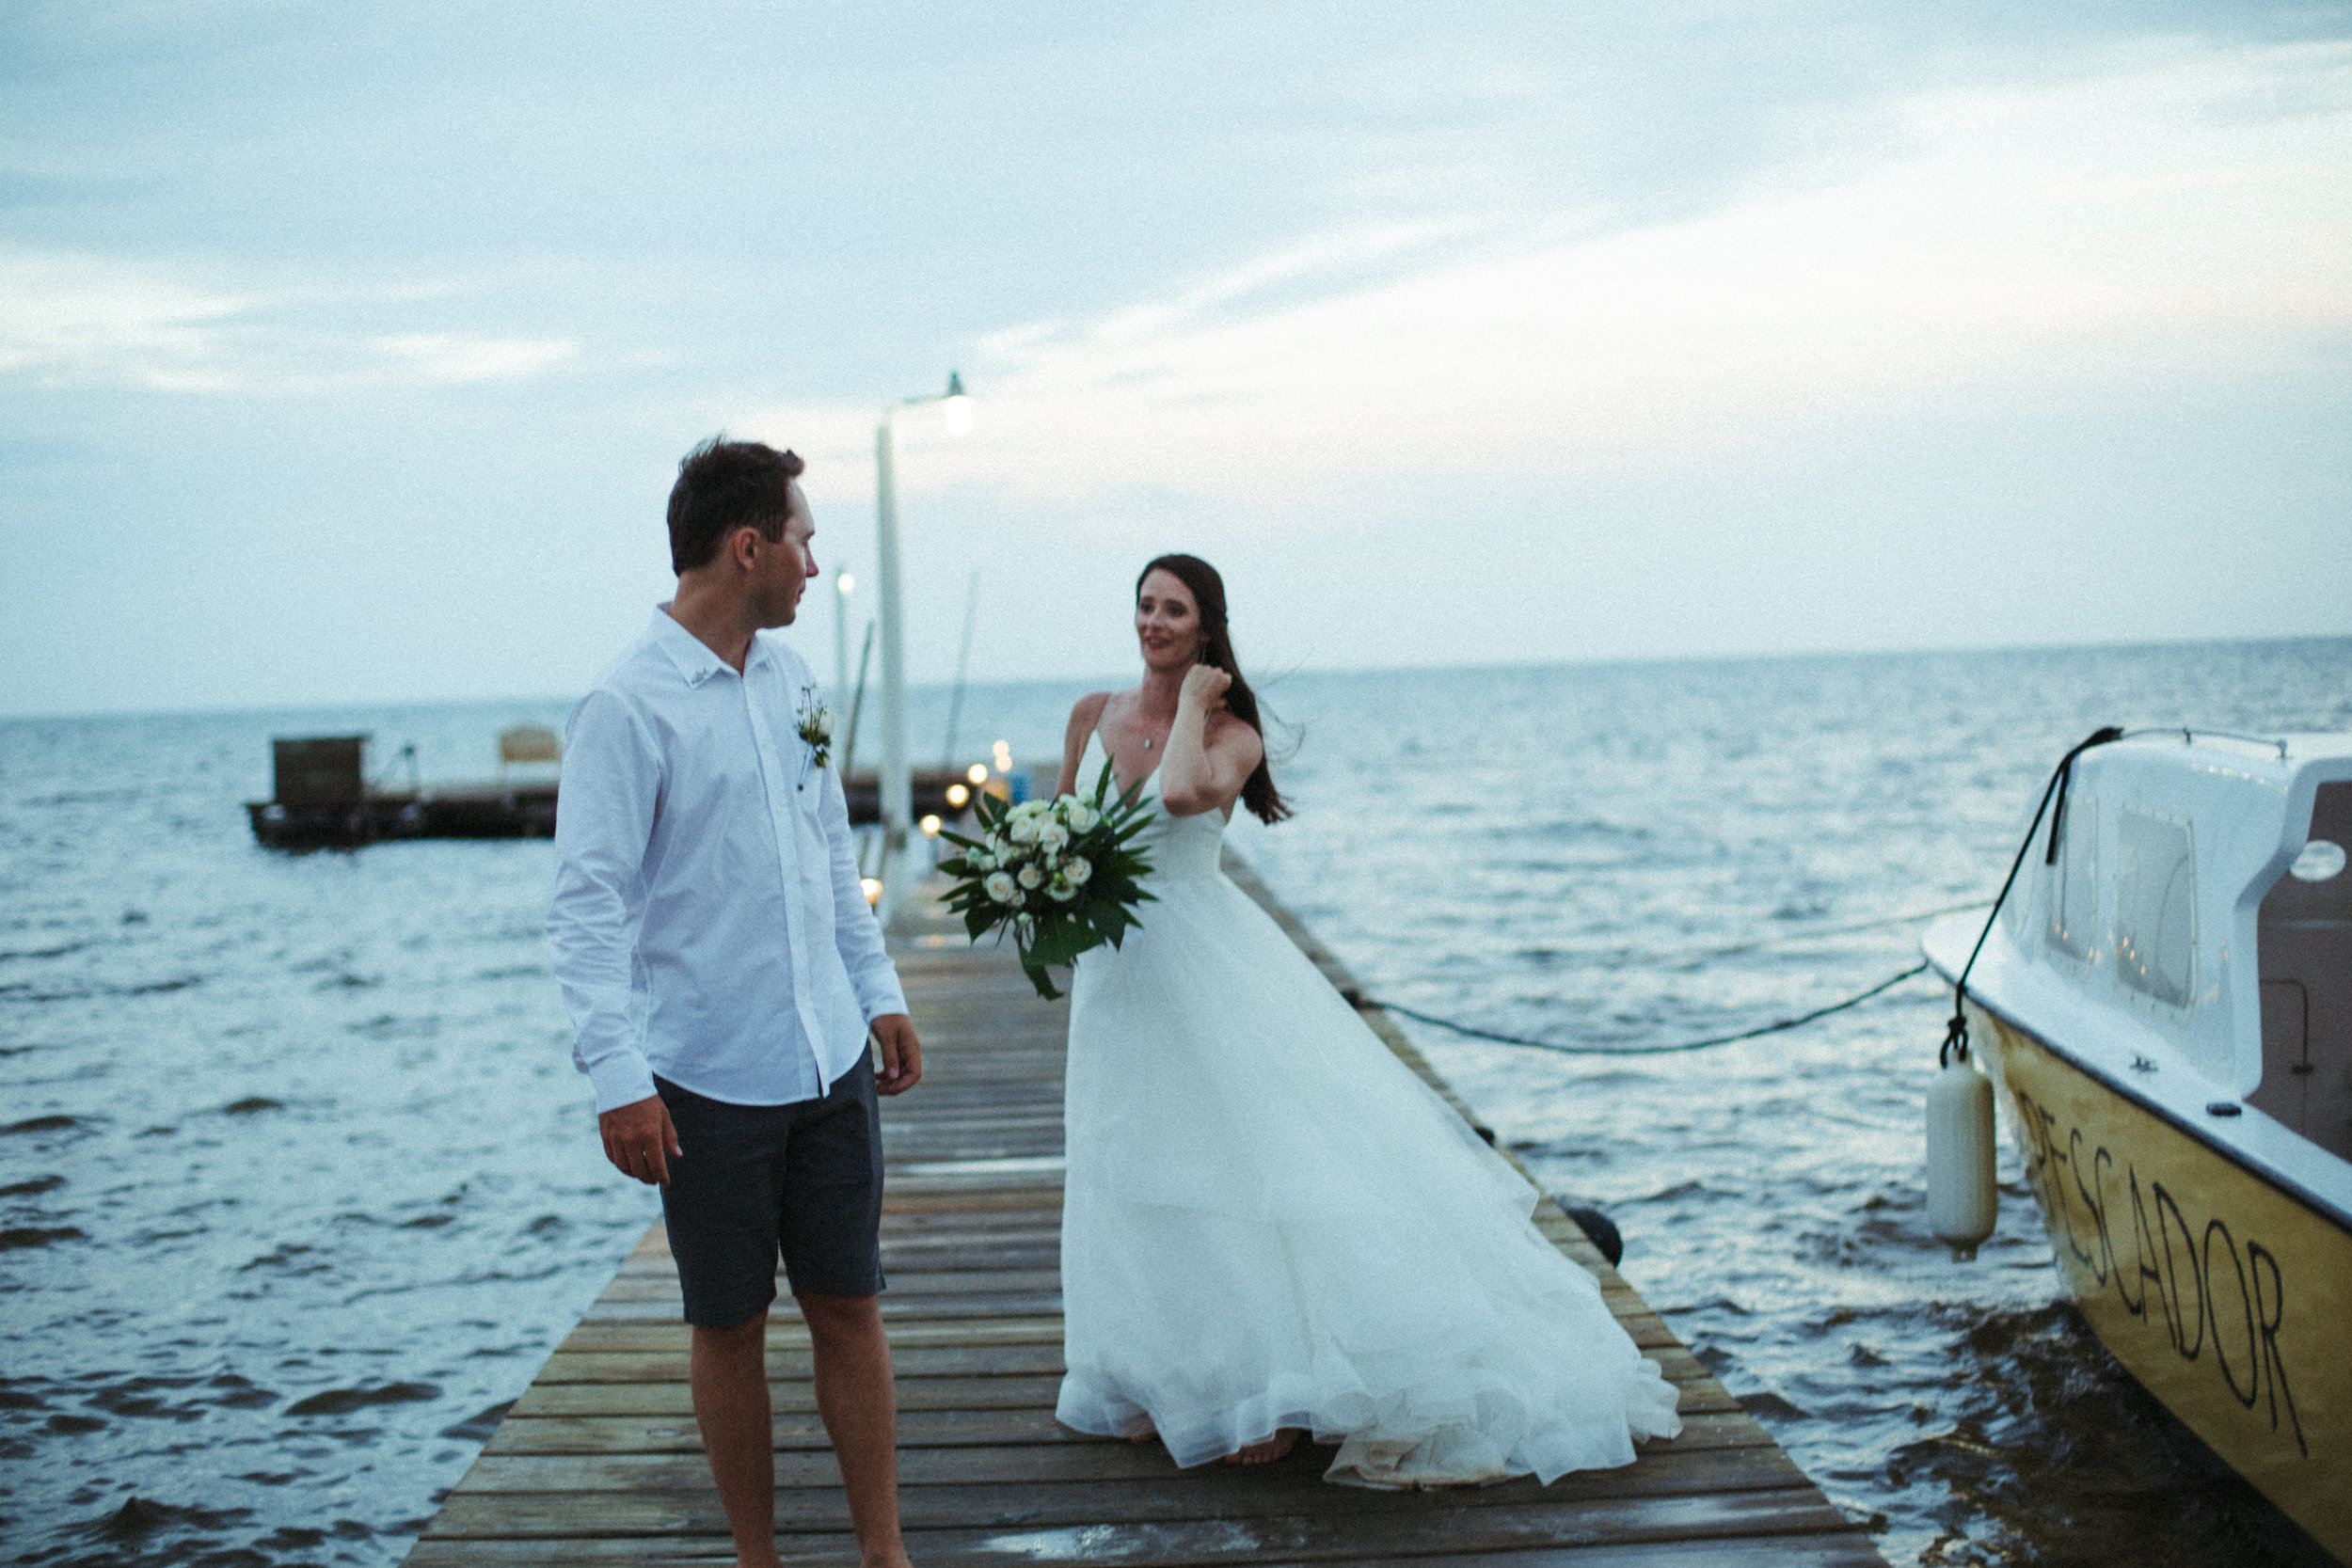 san-pescador-belize-wedding-christinemariephoto-j-k-146.jpg